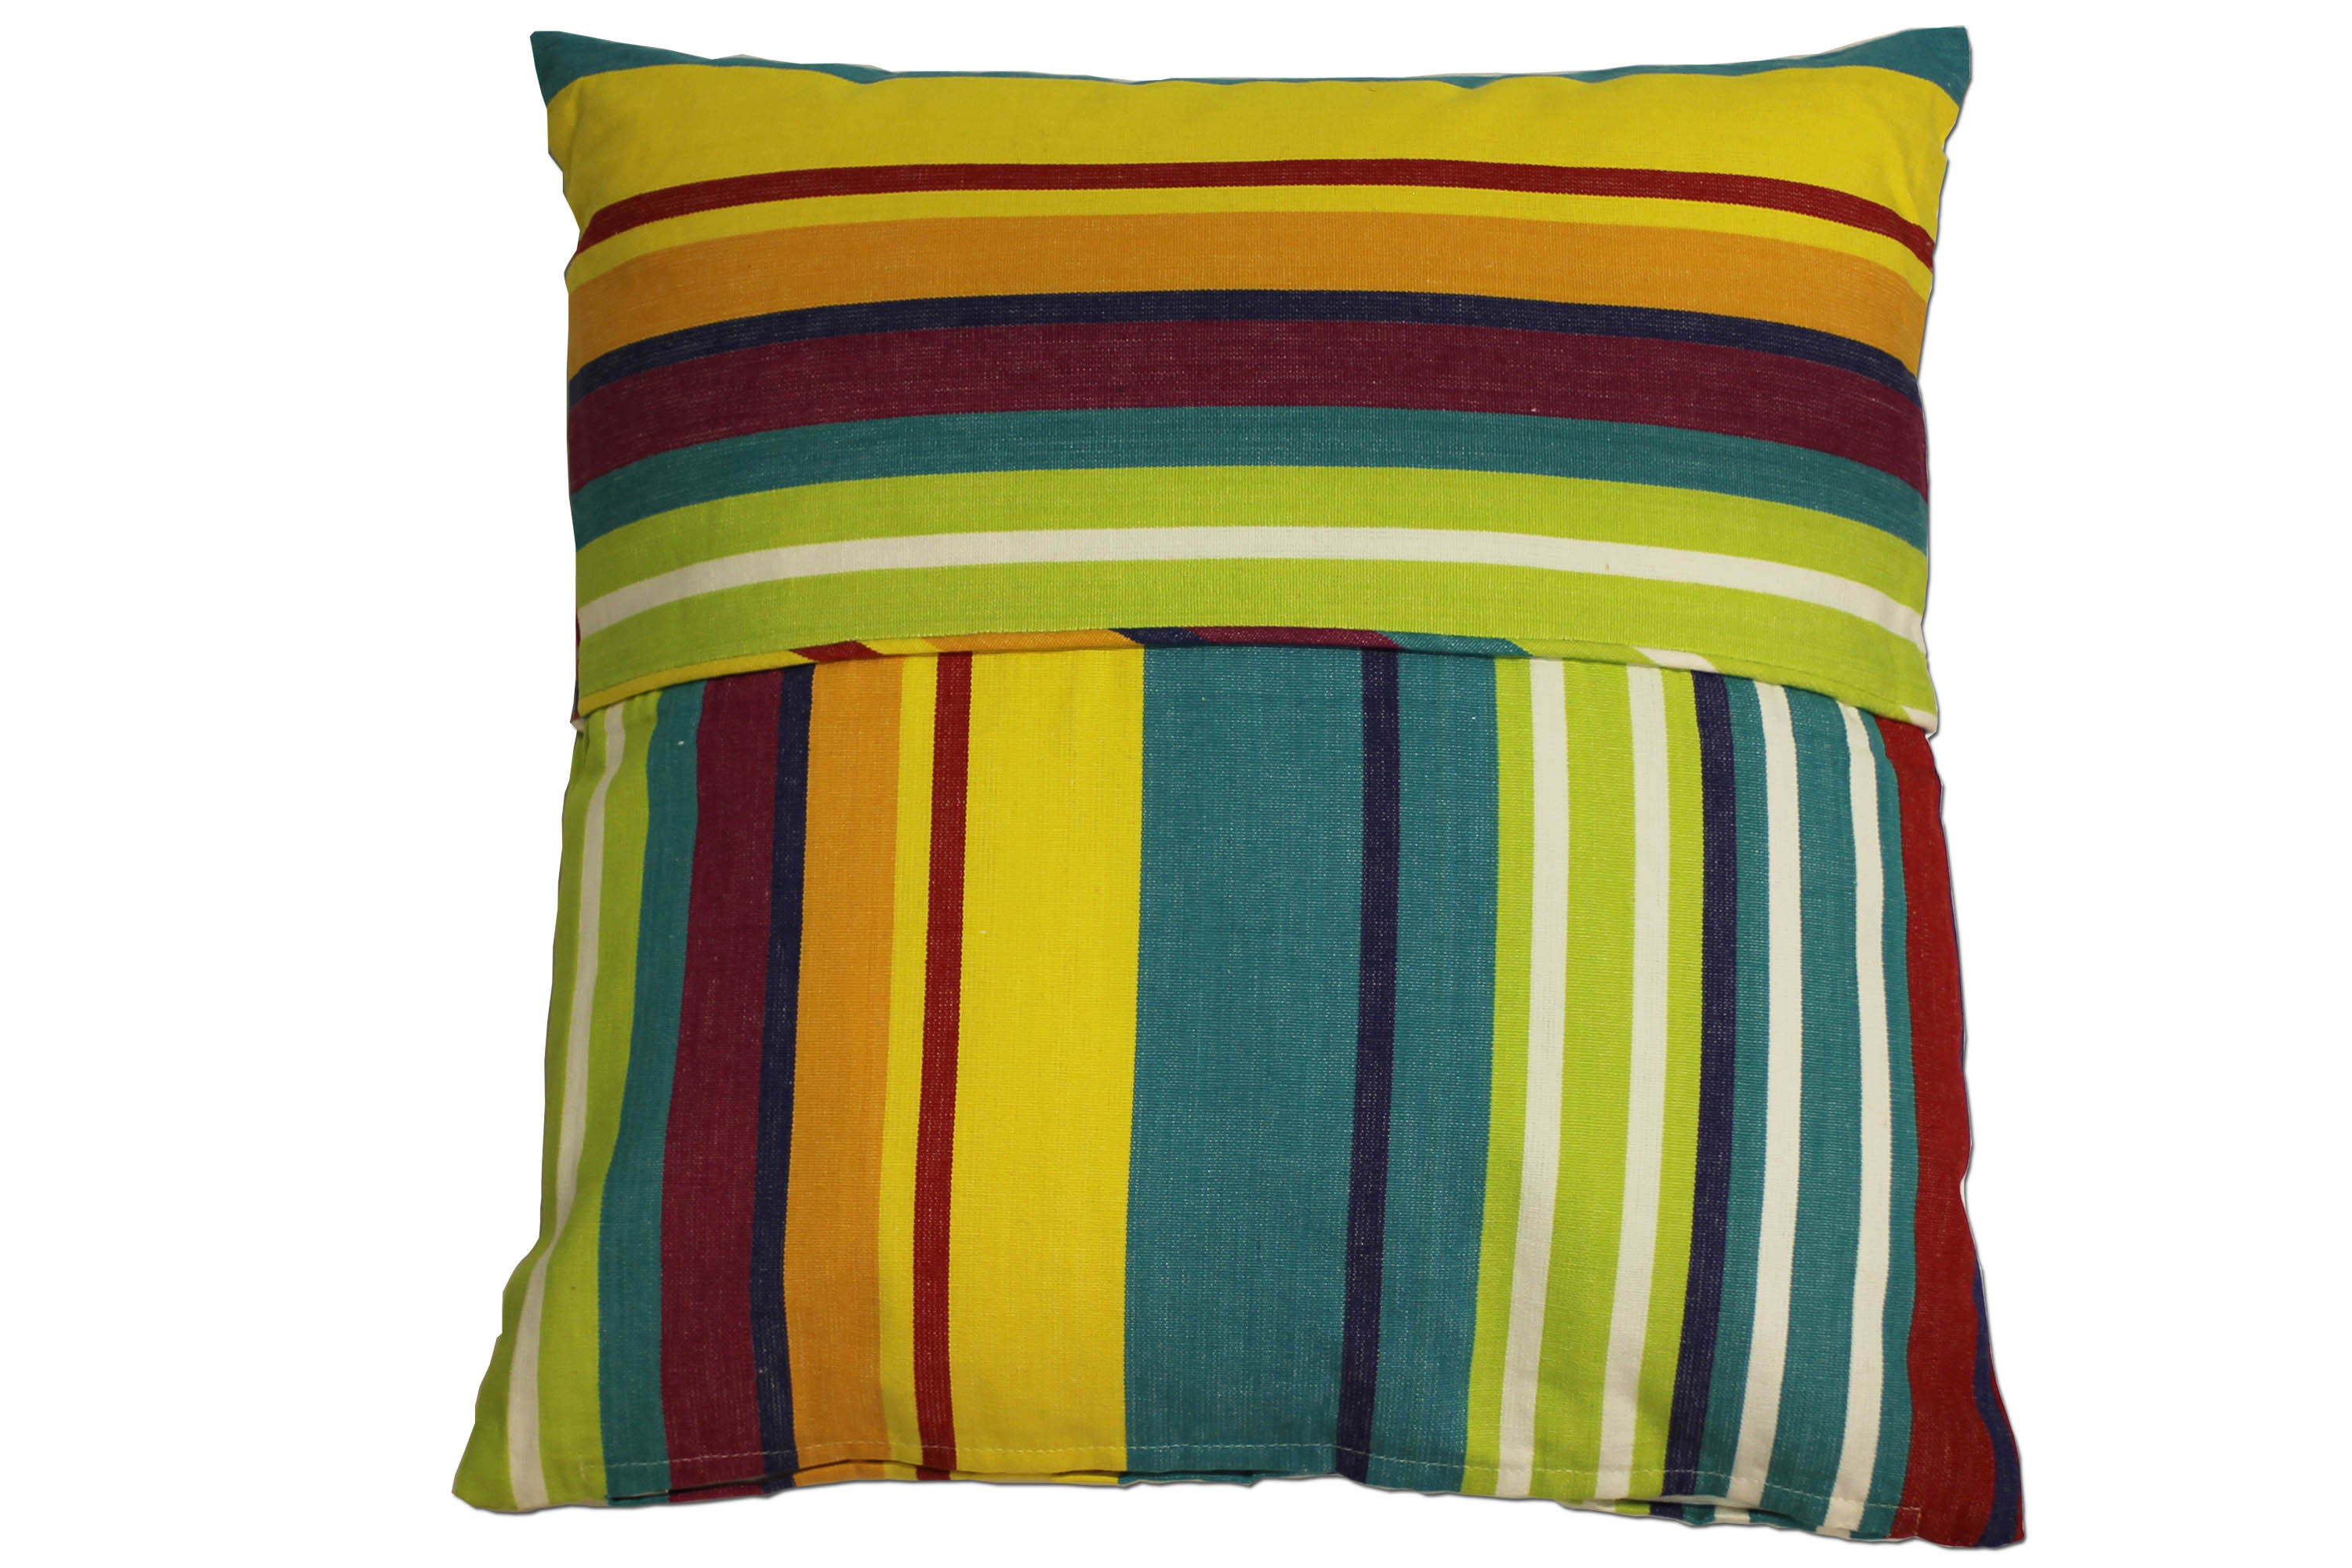 Striped Piped Cushions - Aerobics Stripe